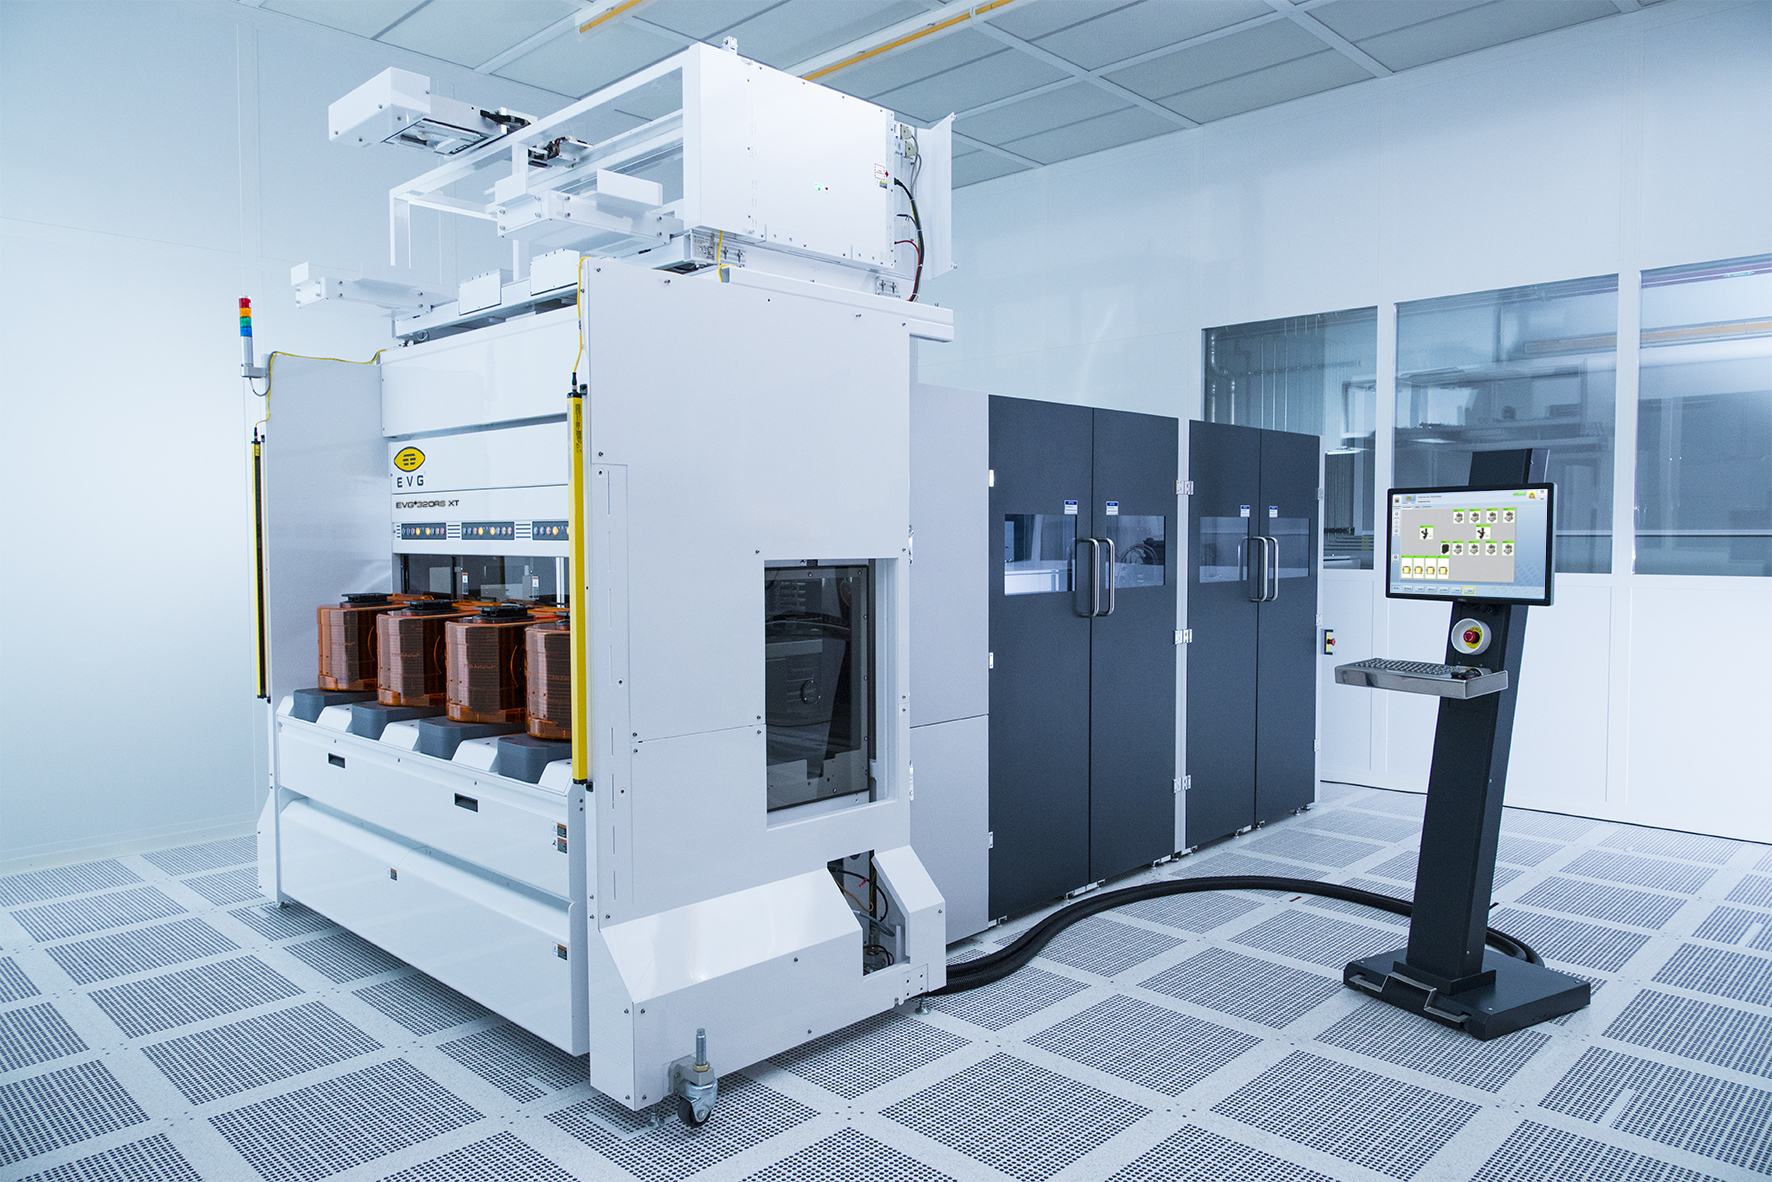 Semiconductor Wafer Cleaning Equipment Market Production, Consumption,  Export and Import, Revenue, Price Trend by Type, Analysis by 2021 –  Semiconductor for You